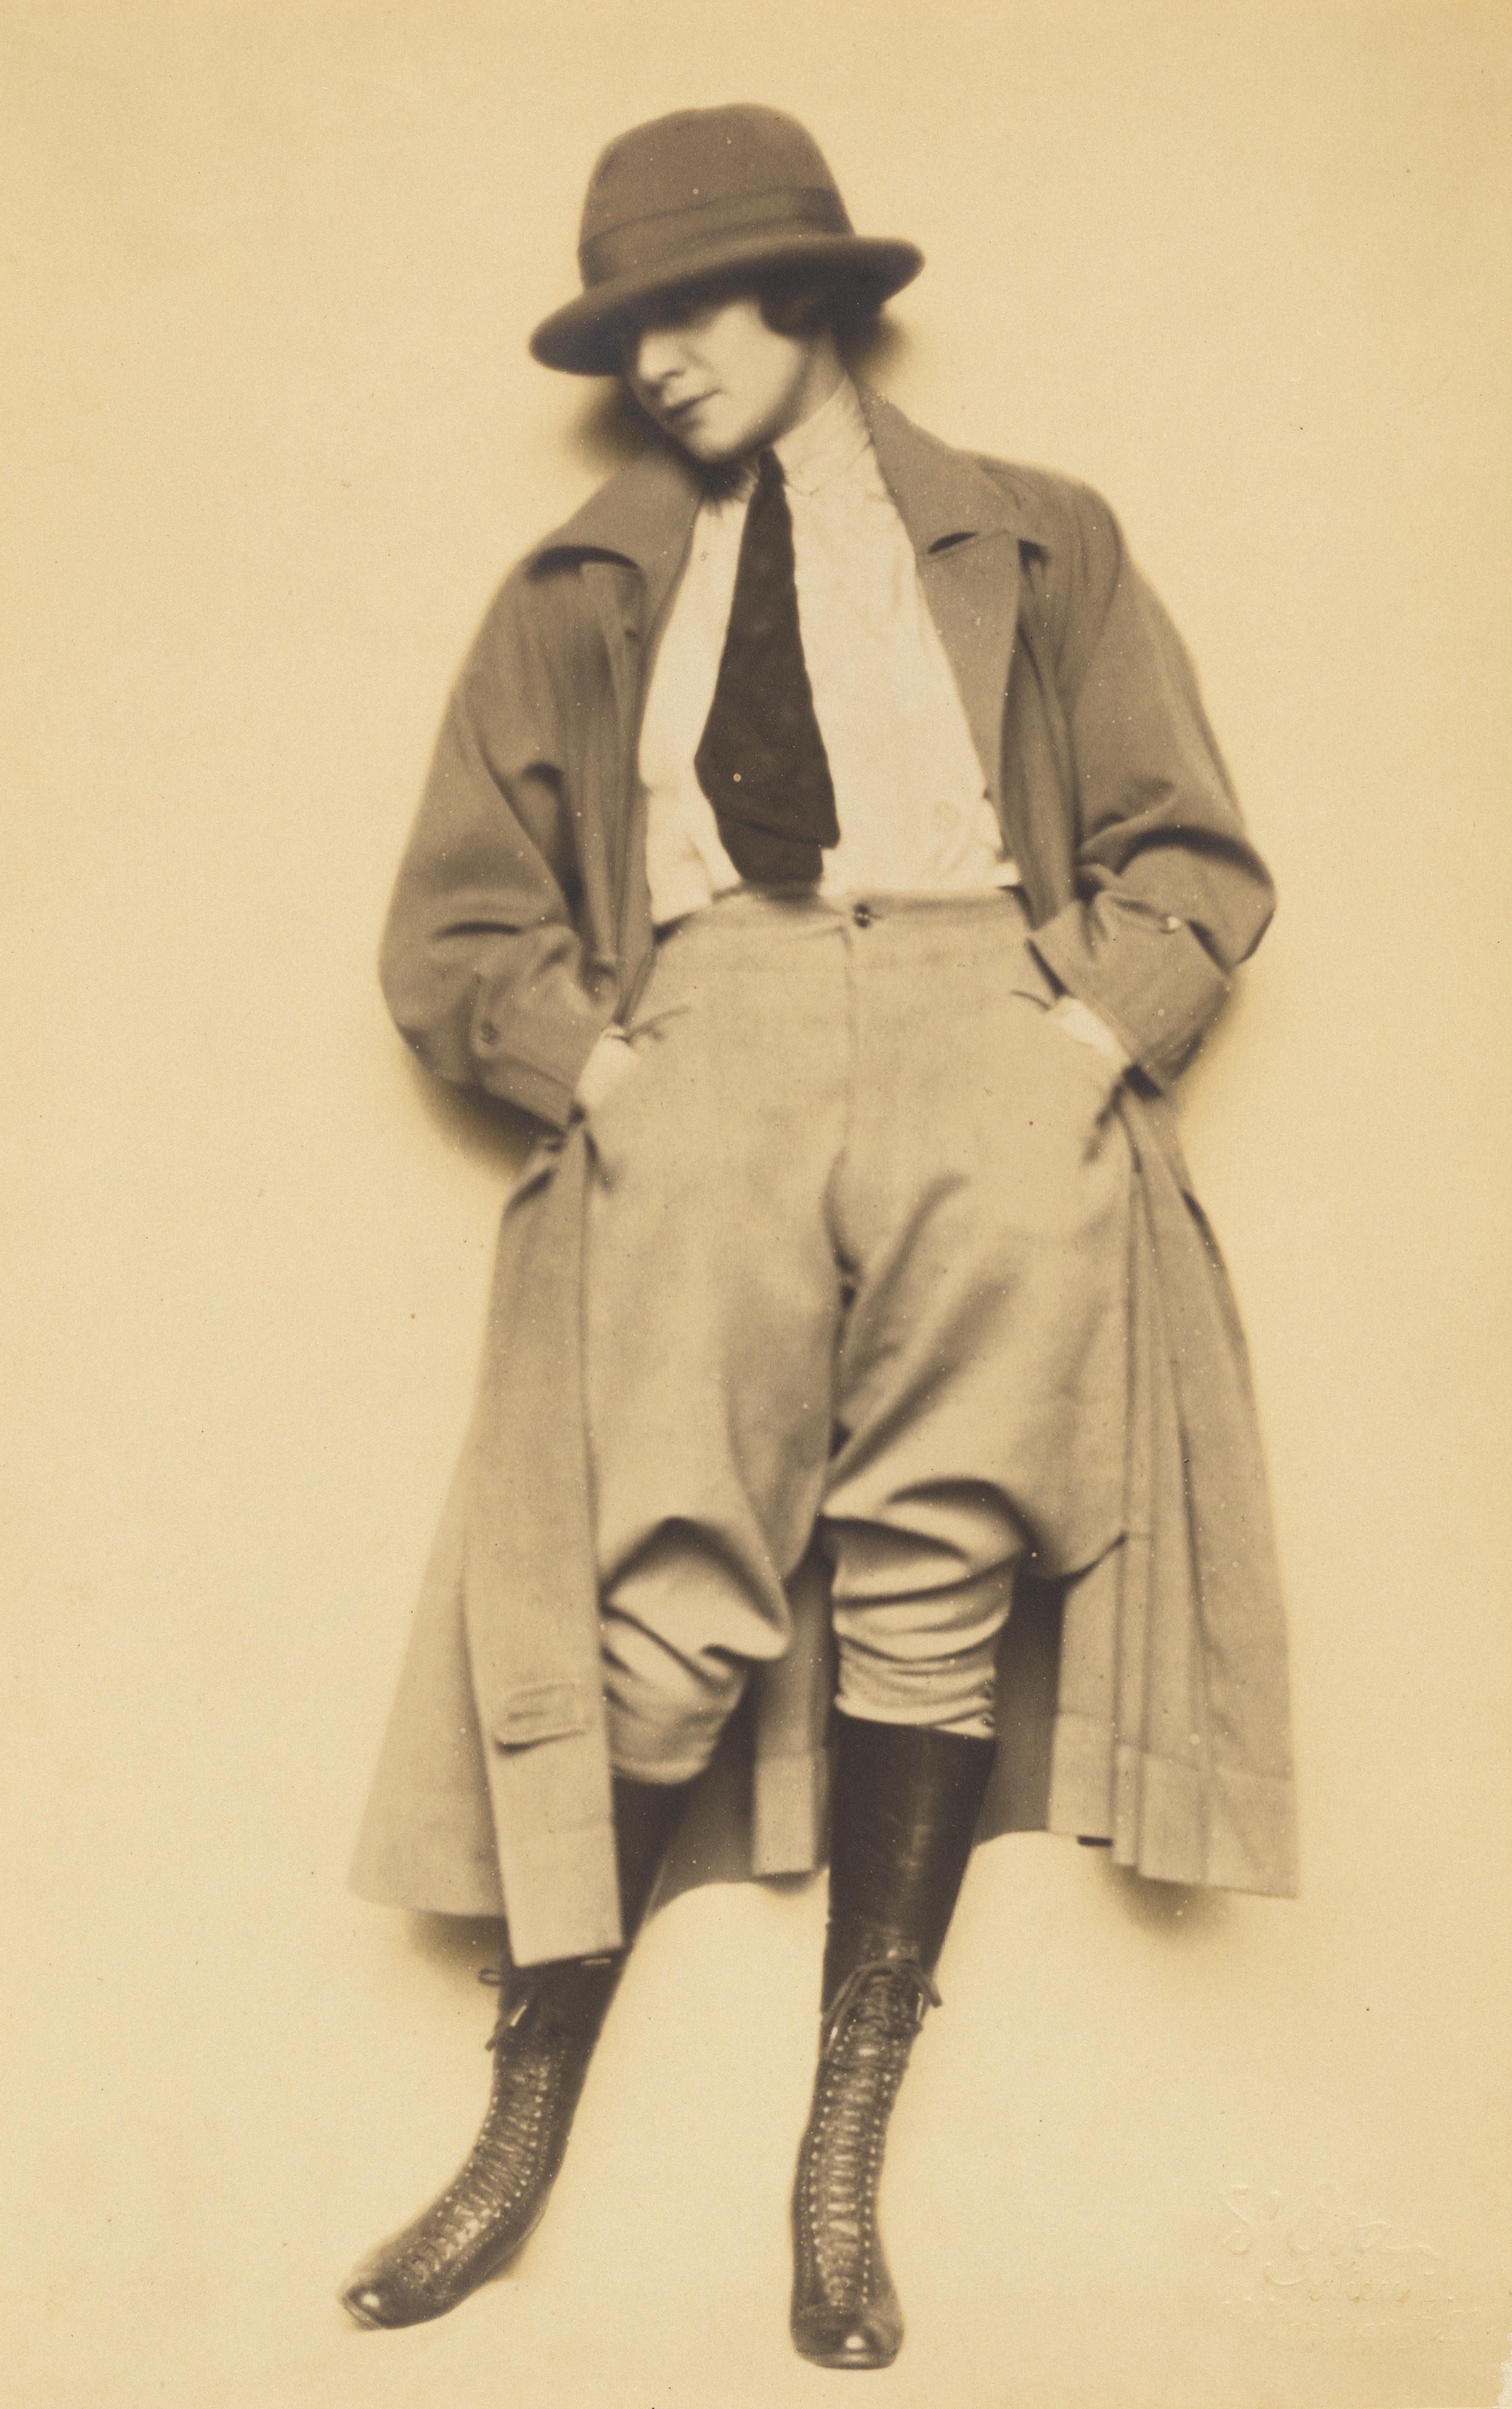 A woman dressed in man's clothing and a trench coat, facing the camera